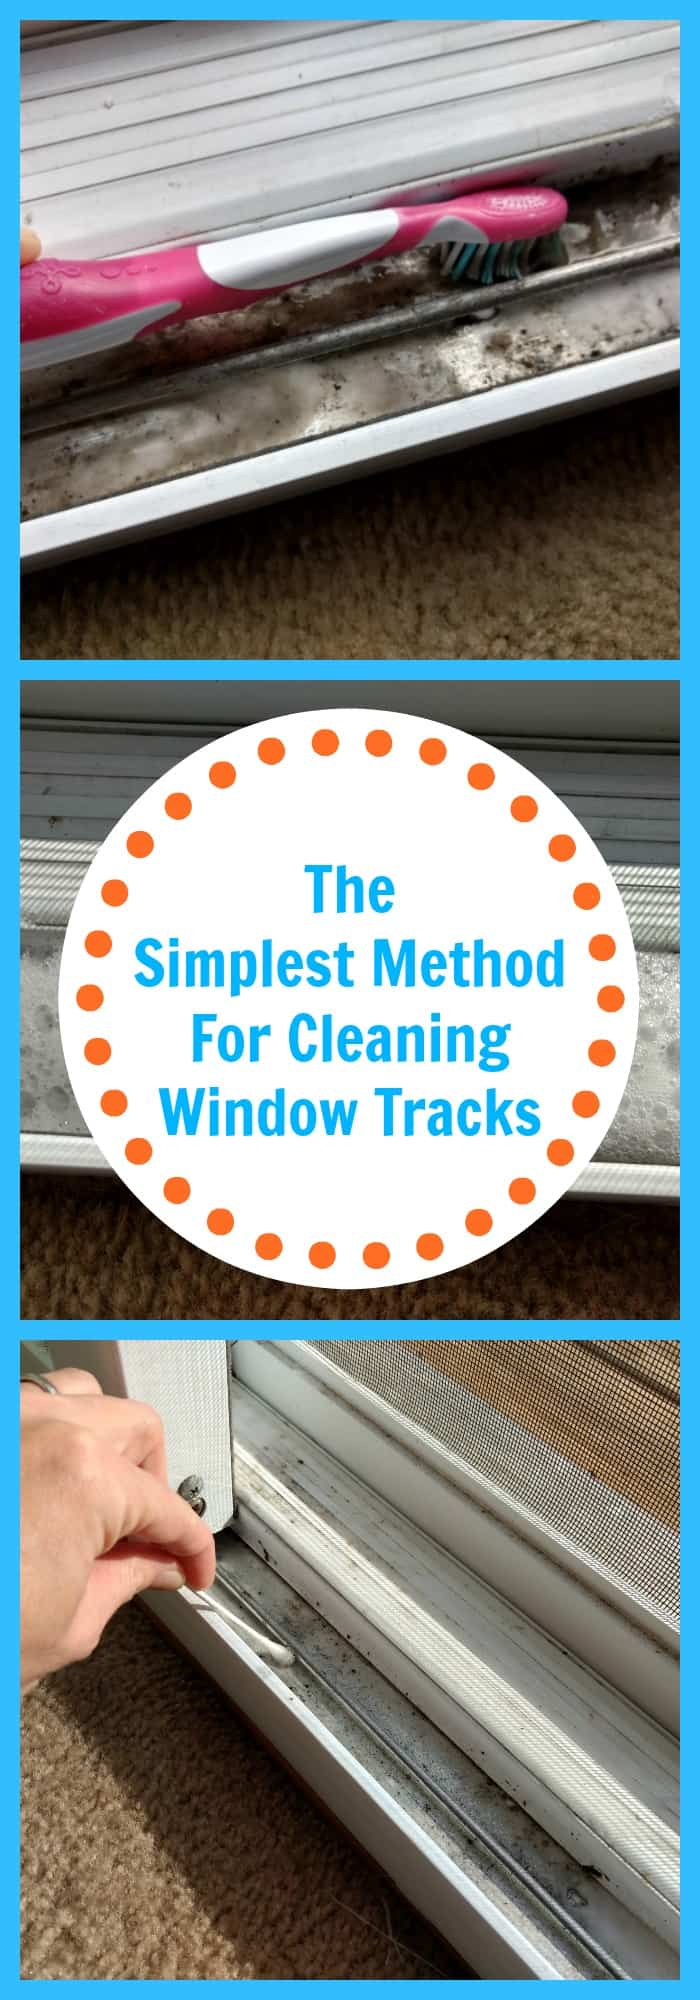 Cleaning--The Simplest Method For Cleaning Window Tracks--The Organized Mom